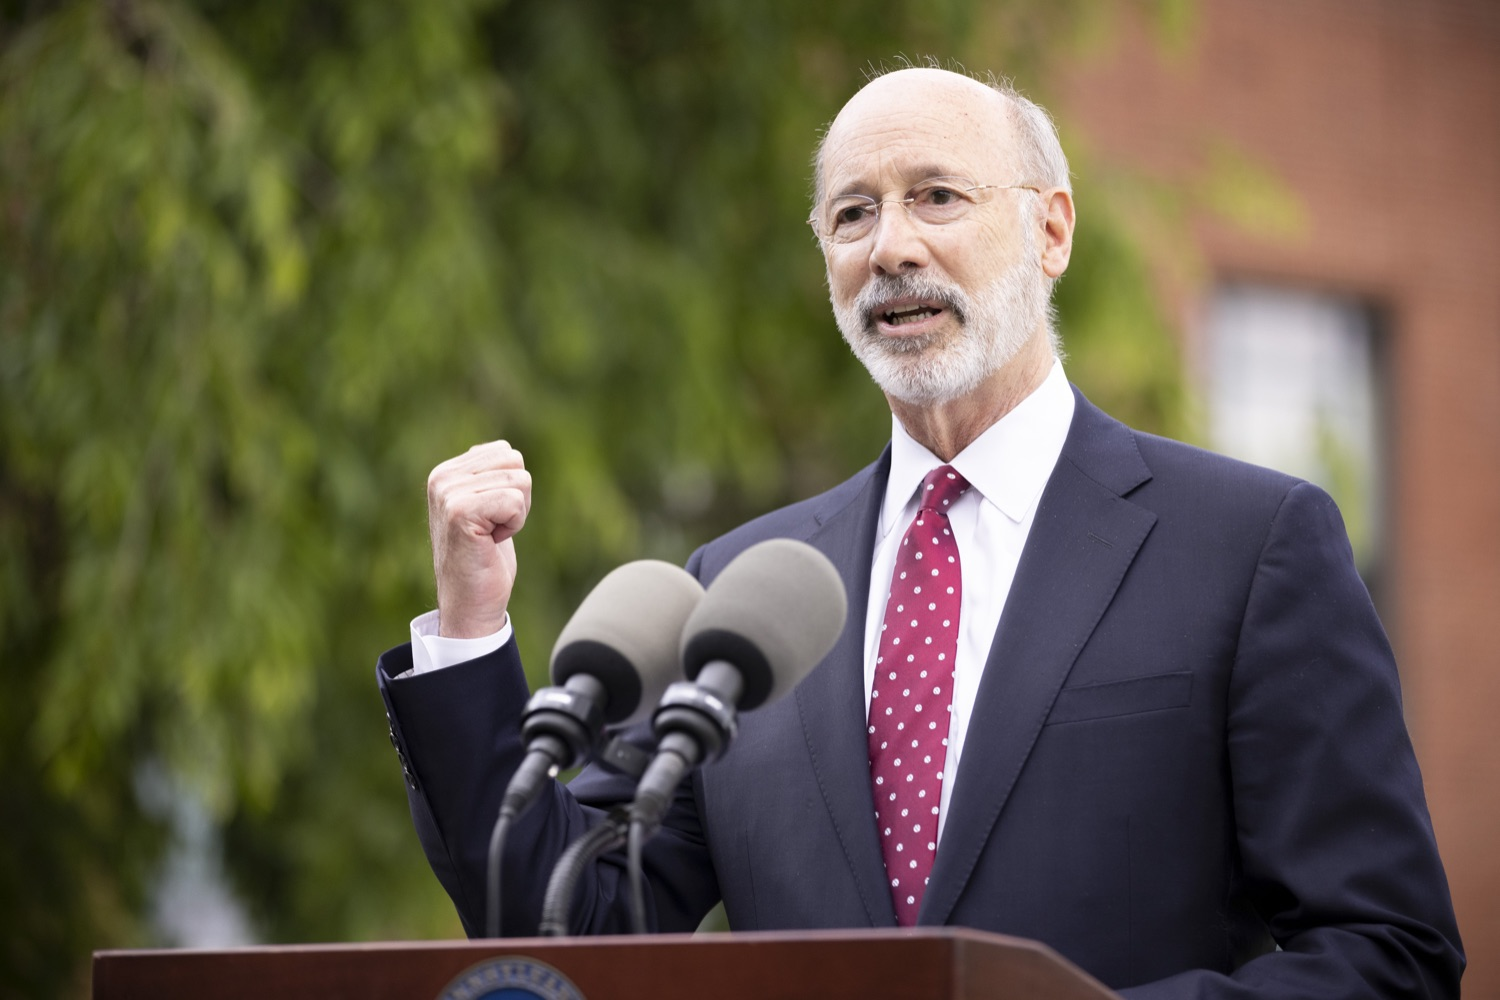 """<a href=""""https://filesource.wostreaming.net/commonwealthofpa/photo/18796_gov_charterSchool_dz_010.jpg"""" target=""""_blank"""">⇣Download Photo<br></a>Pennsylvania Governor Tom Wolf speaking with the press.  With overwhelming support among school districts for his charter school accountability plan, Governor Tom Wolf visited J.P. McCaskey High School in Lancaster today to discuss his bipartisan proposal that saves an estimated $395 million a year. Lancaster, PA  June 01, 2021"""